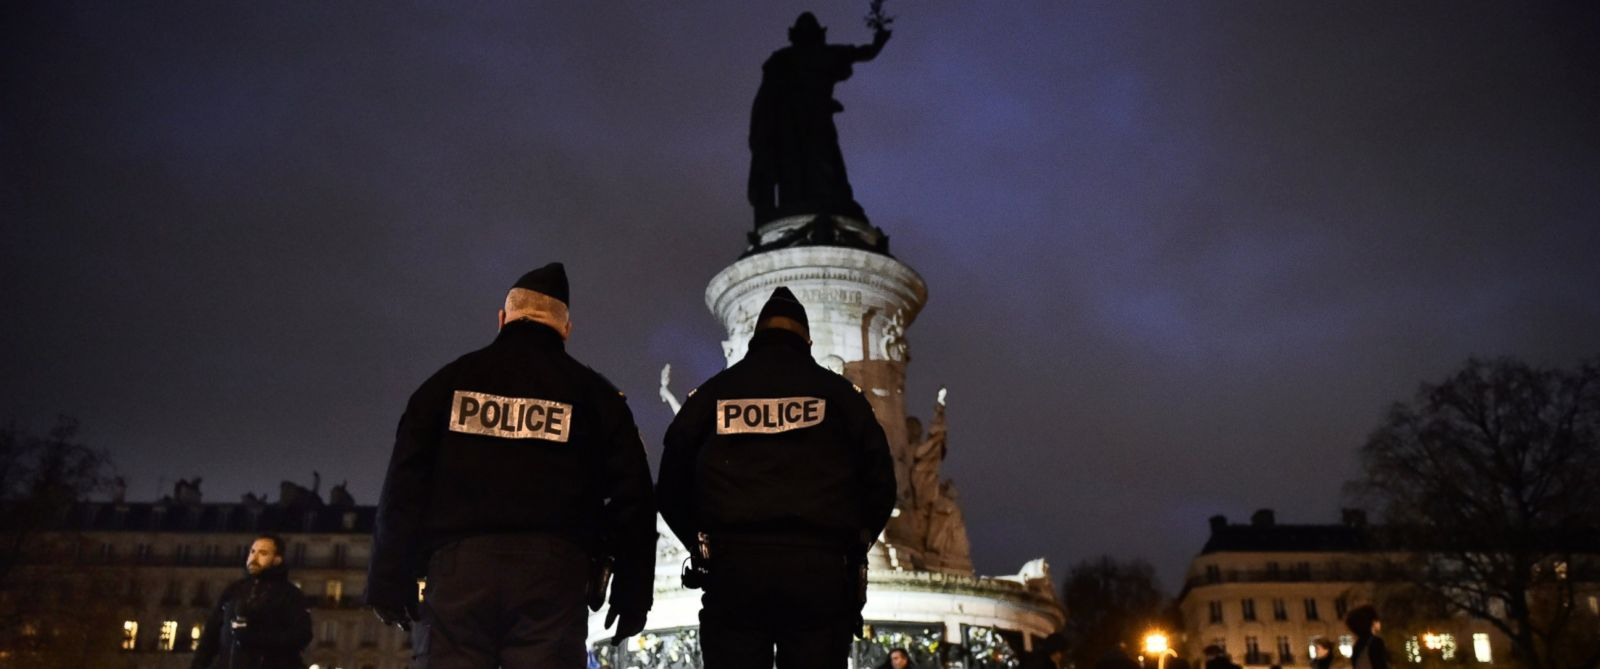 PHOTO: French police officers stand guard at Place de la Republique (Republic Square) in Paris on Nov. 21, 2015 as people gather to pay tribute to the victims of the Nov. 13th terror attacks.